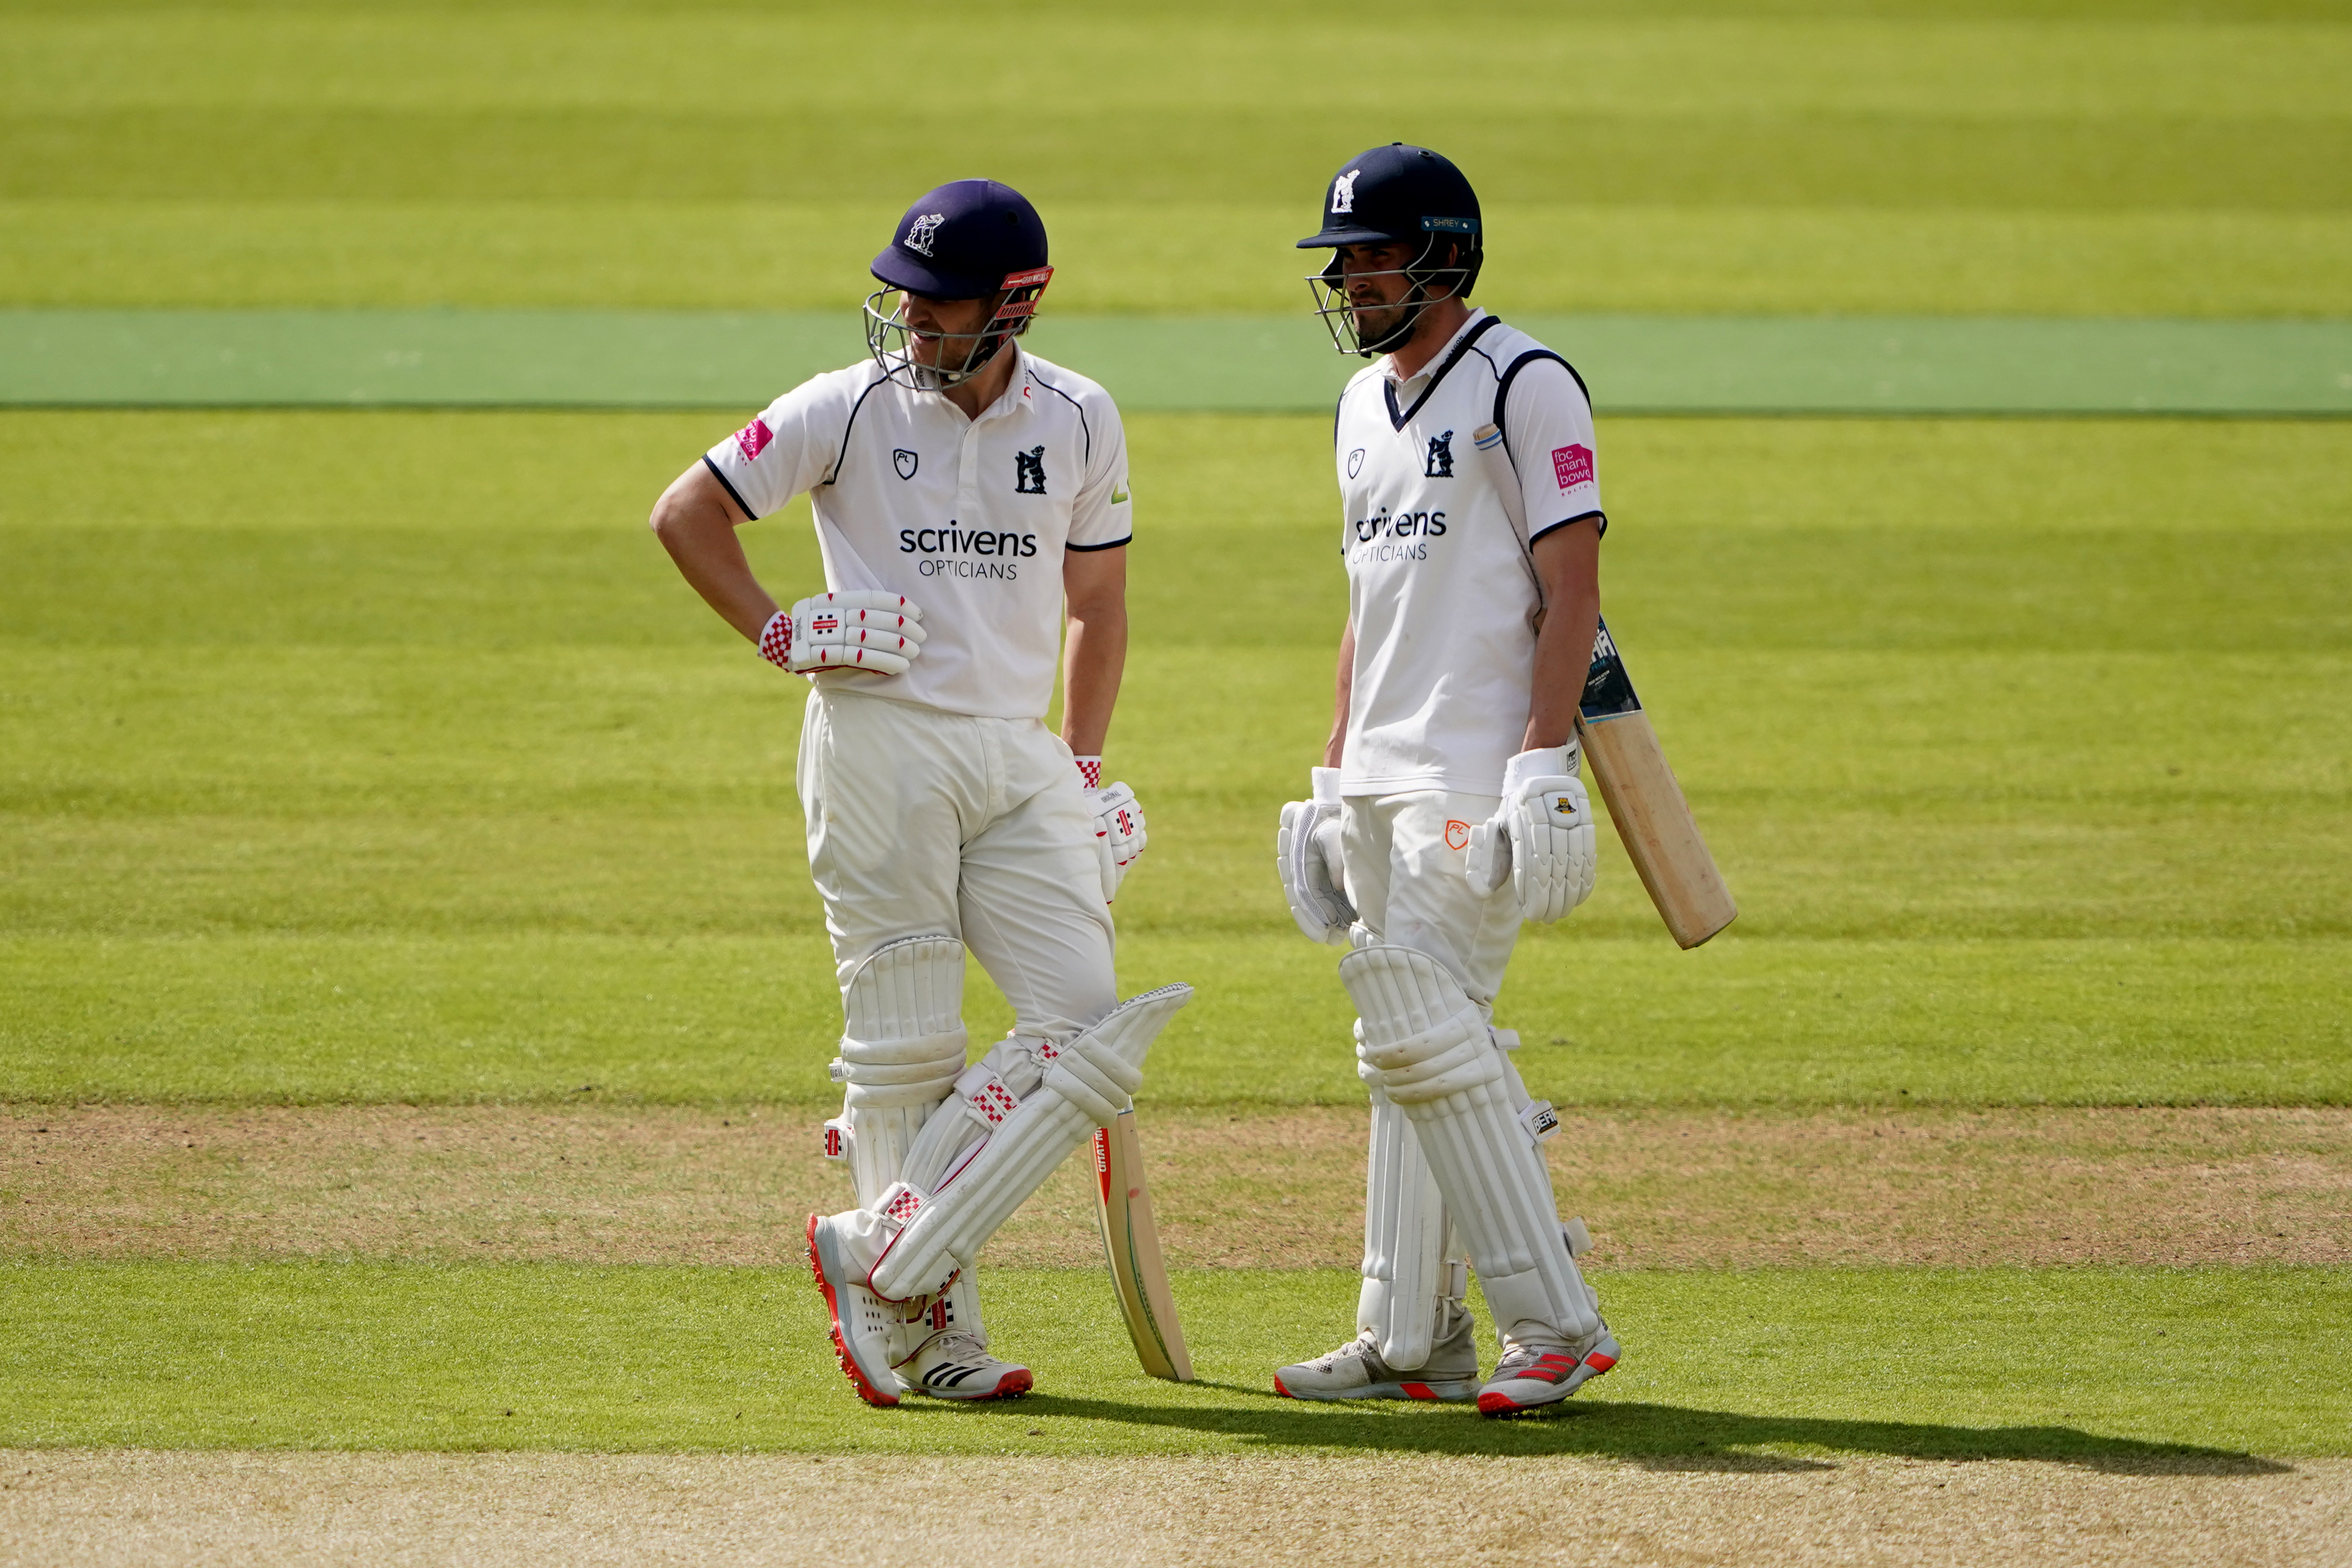 <p>Warwickshire's Sam Hain (left) and Warwickshire's Will Rhodes during day one of the LV= Insurance County Championship match at Edgbaston, Birmingham. Picture date: Thursday May 27, 2021.</p>